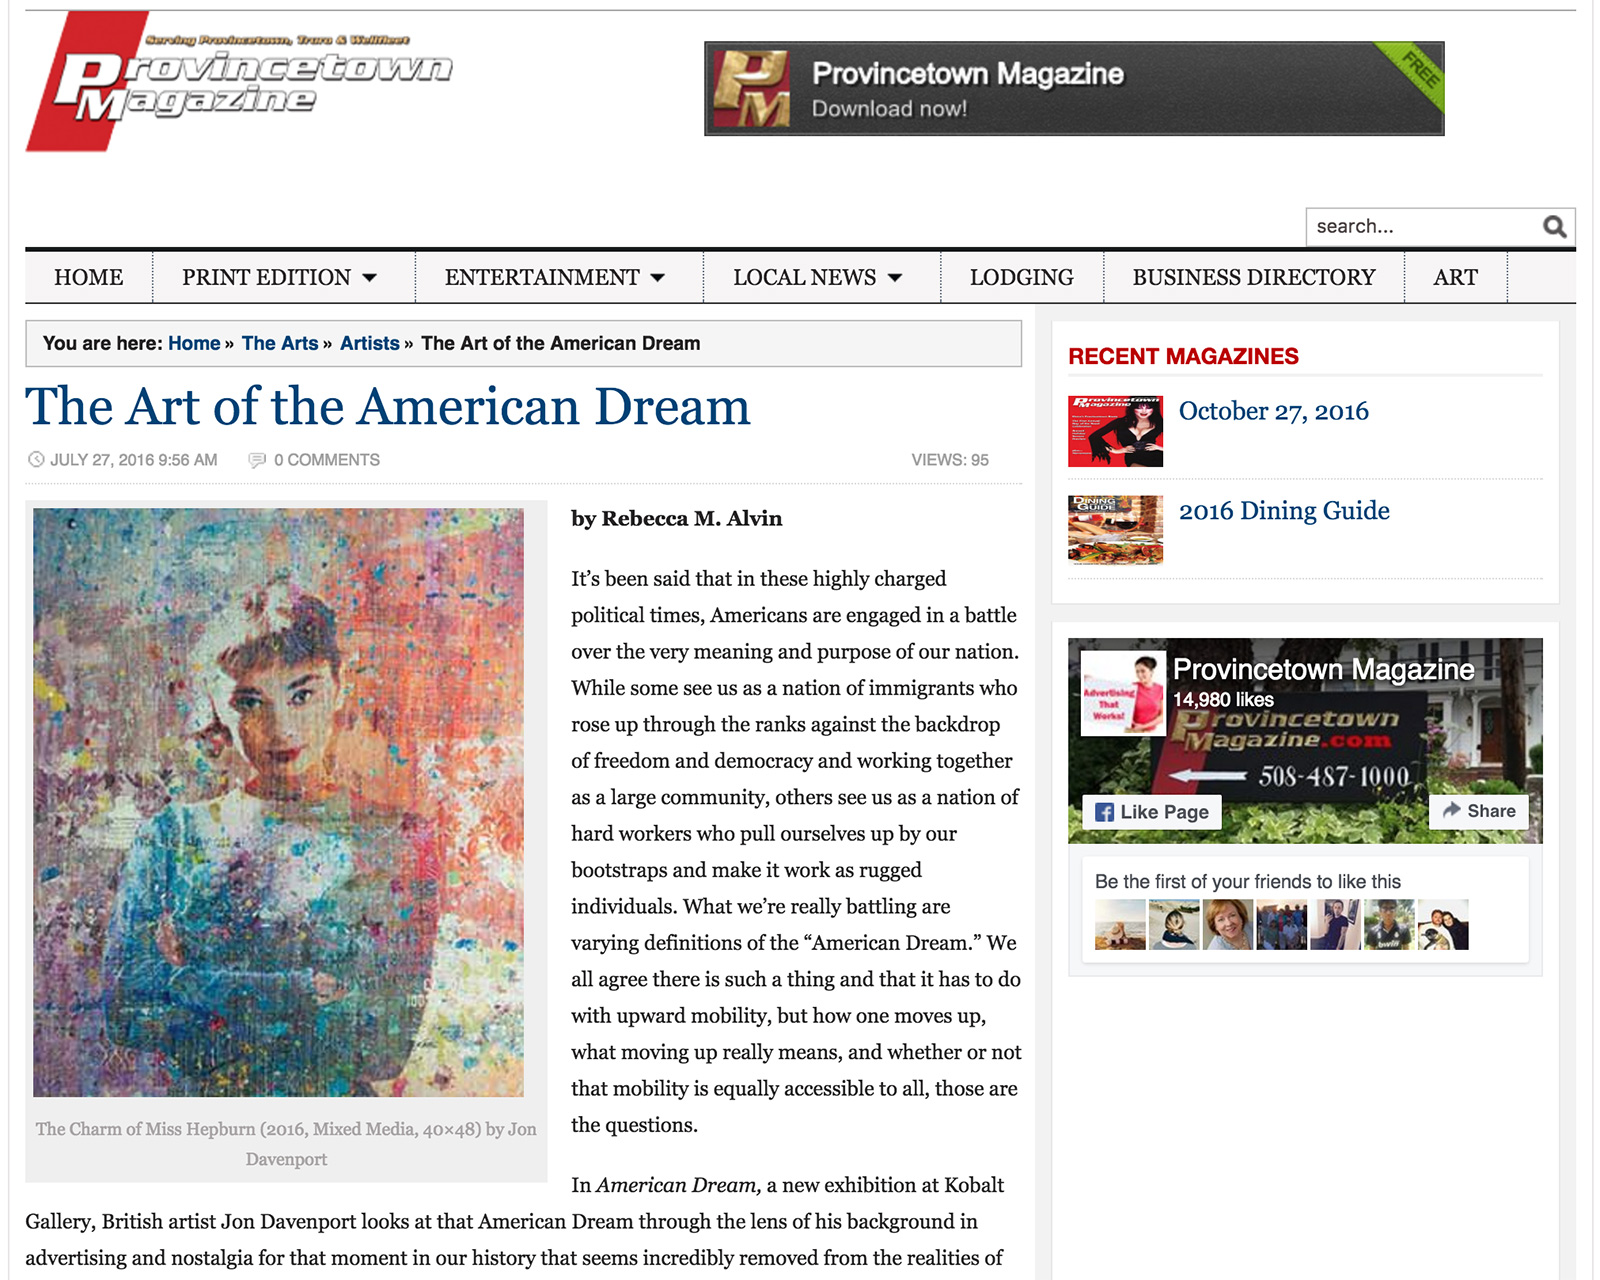 The Art of the American Dream